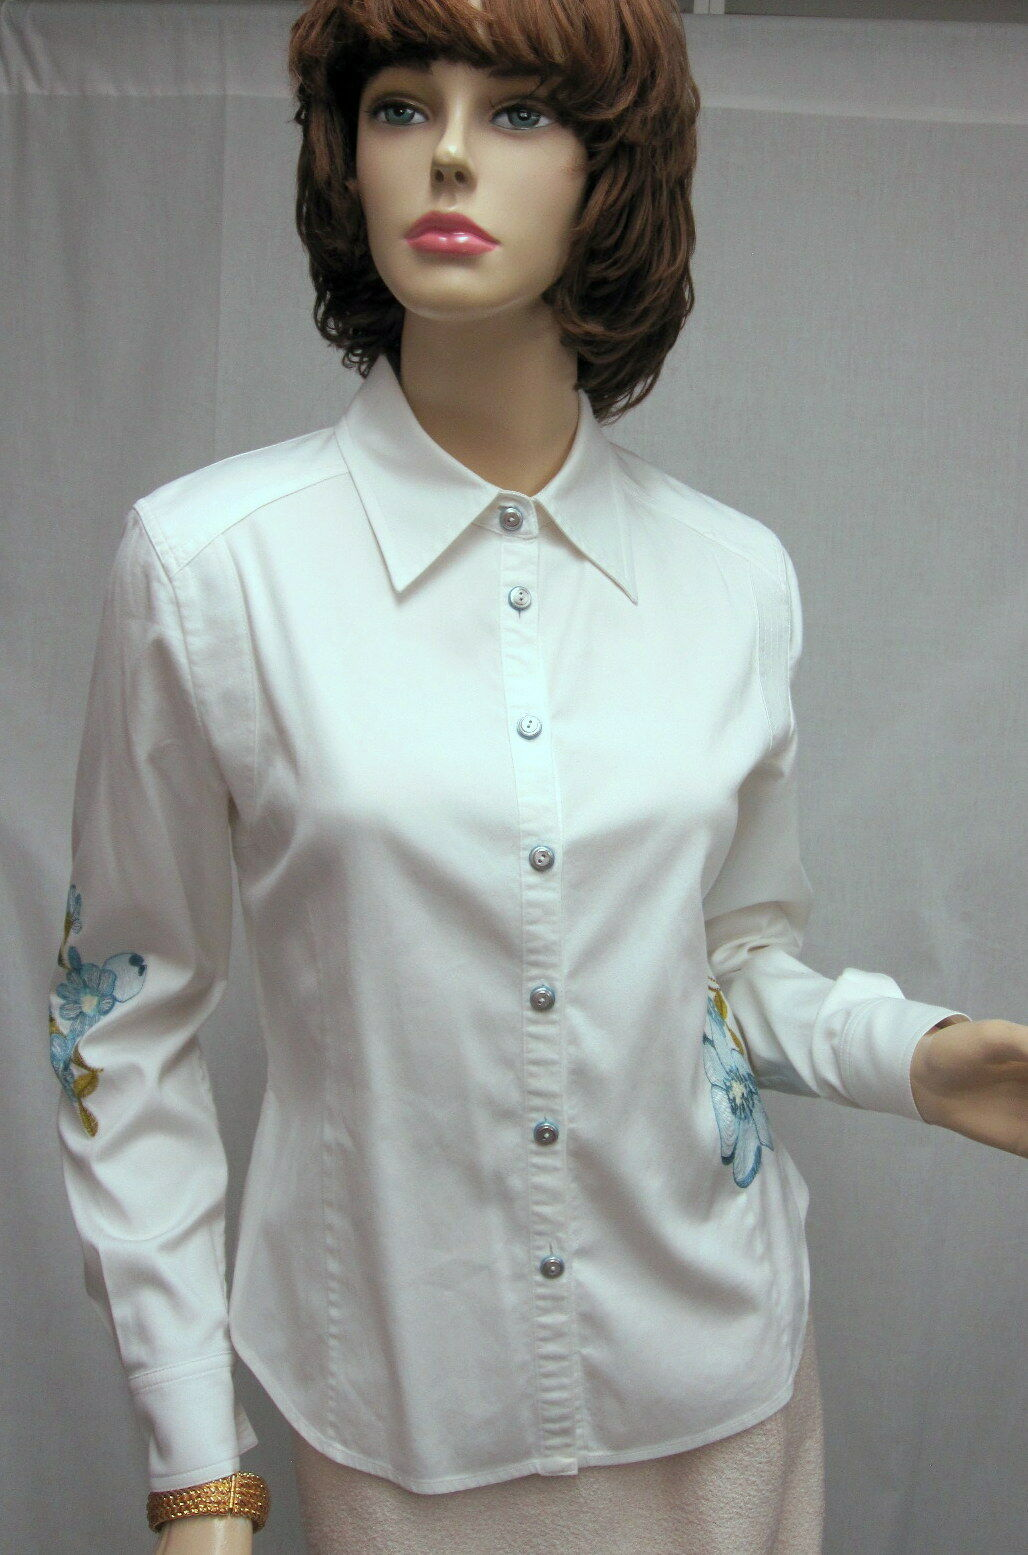 St John Knit SPORT NWOT White bluee Embroidery Long Sleeve Blouse Shirt SZ P